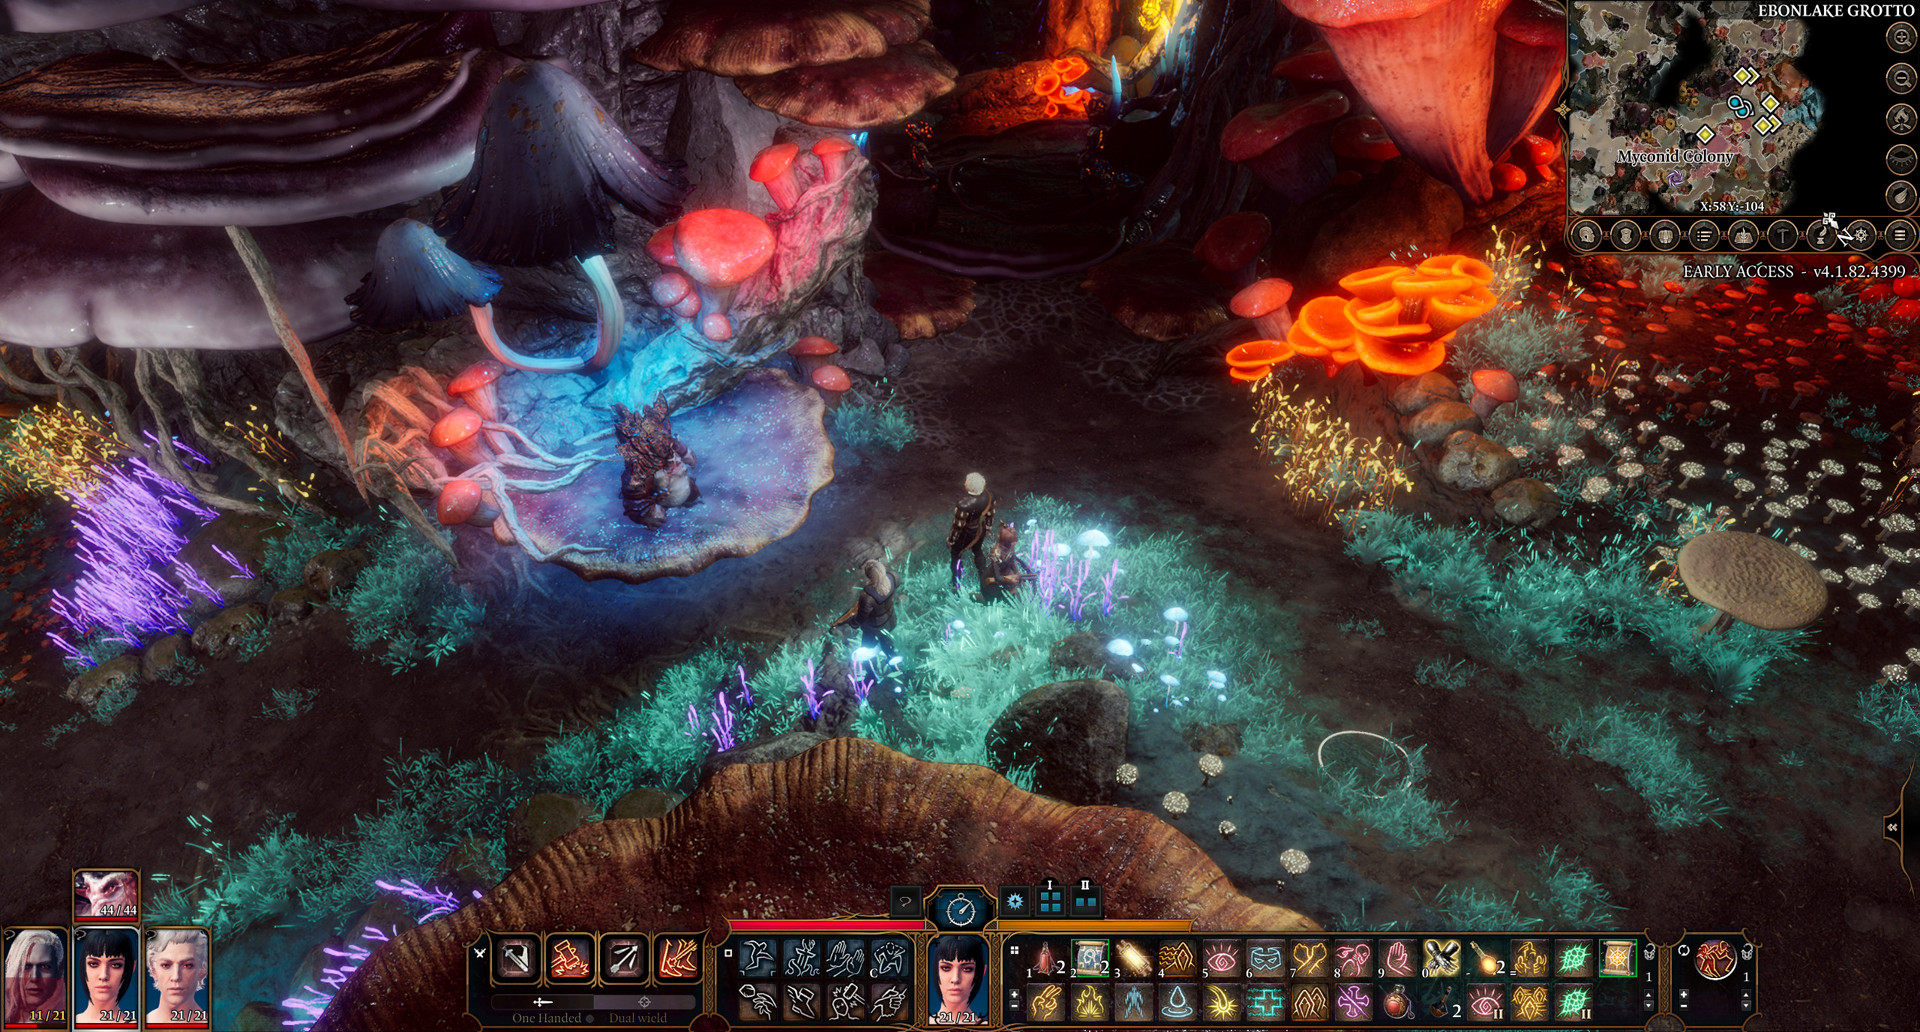 Baldur's Gate early access preview